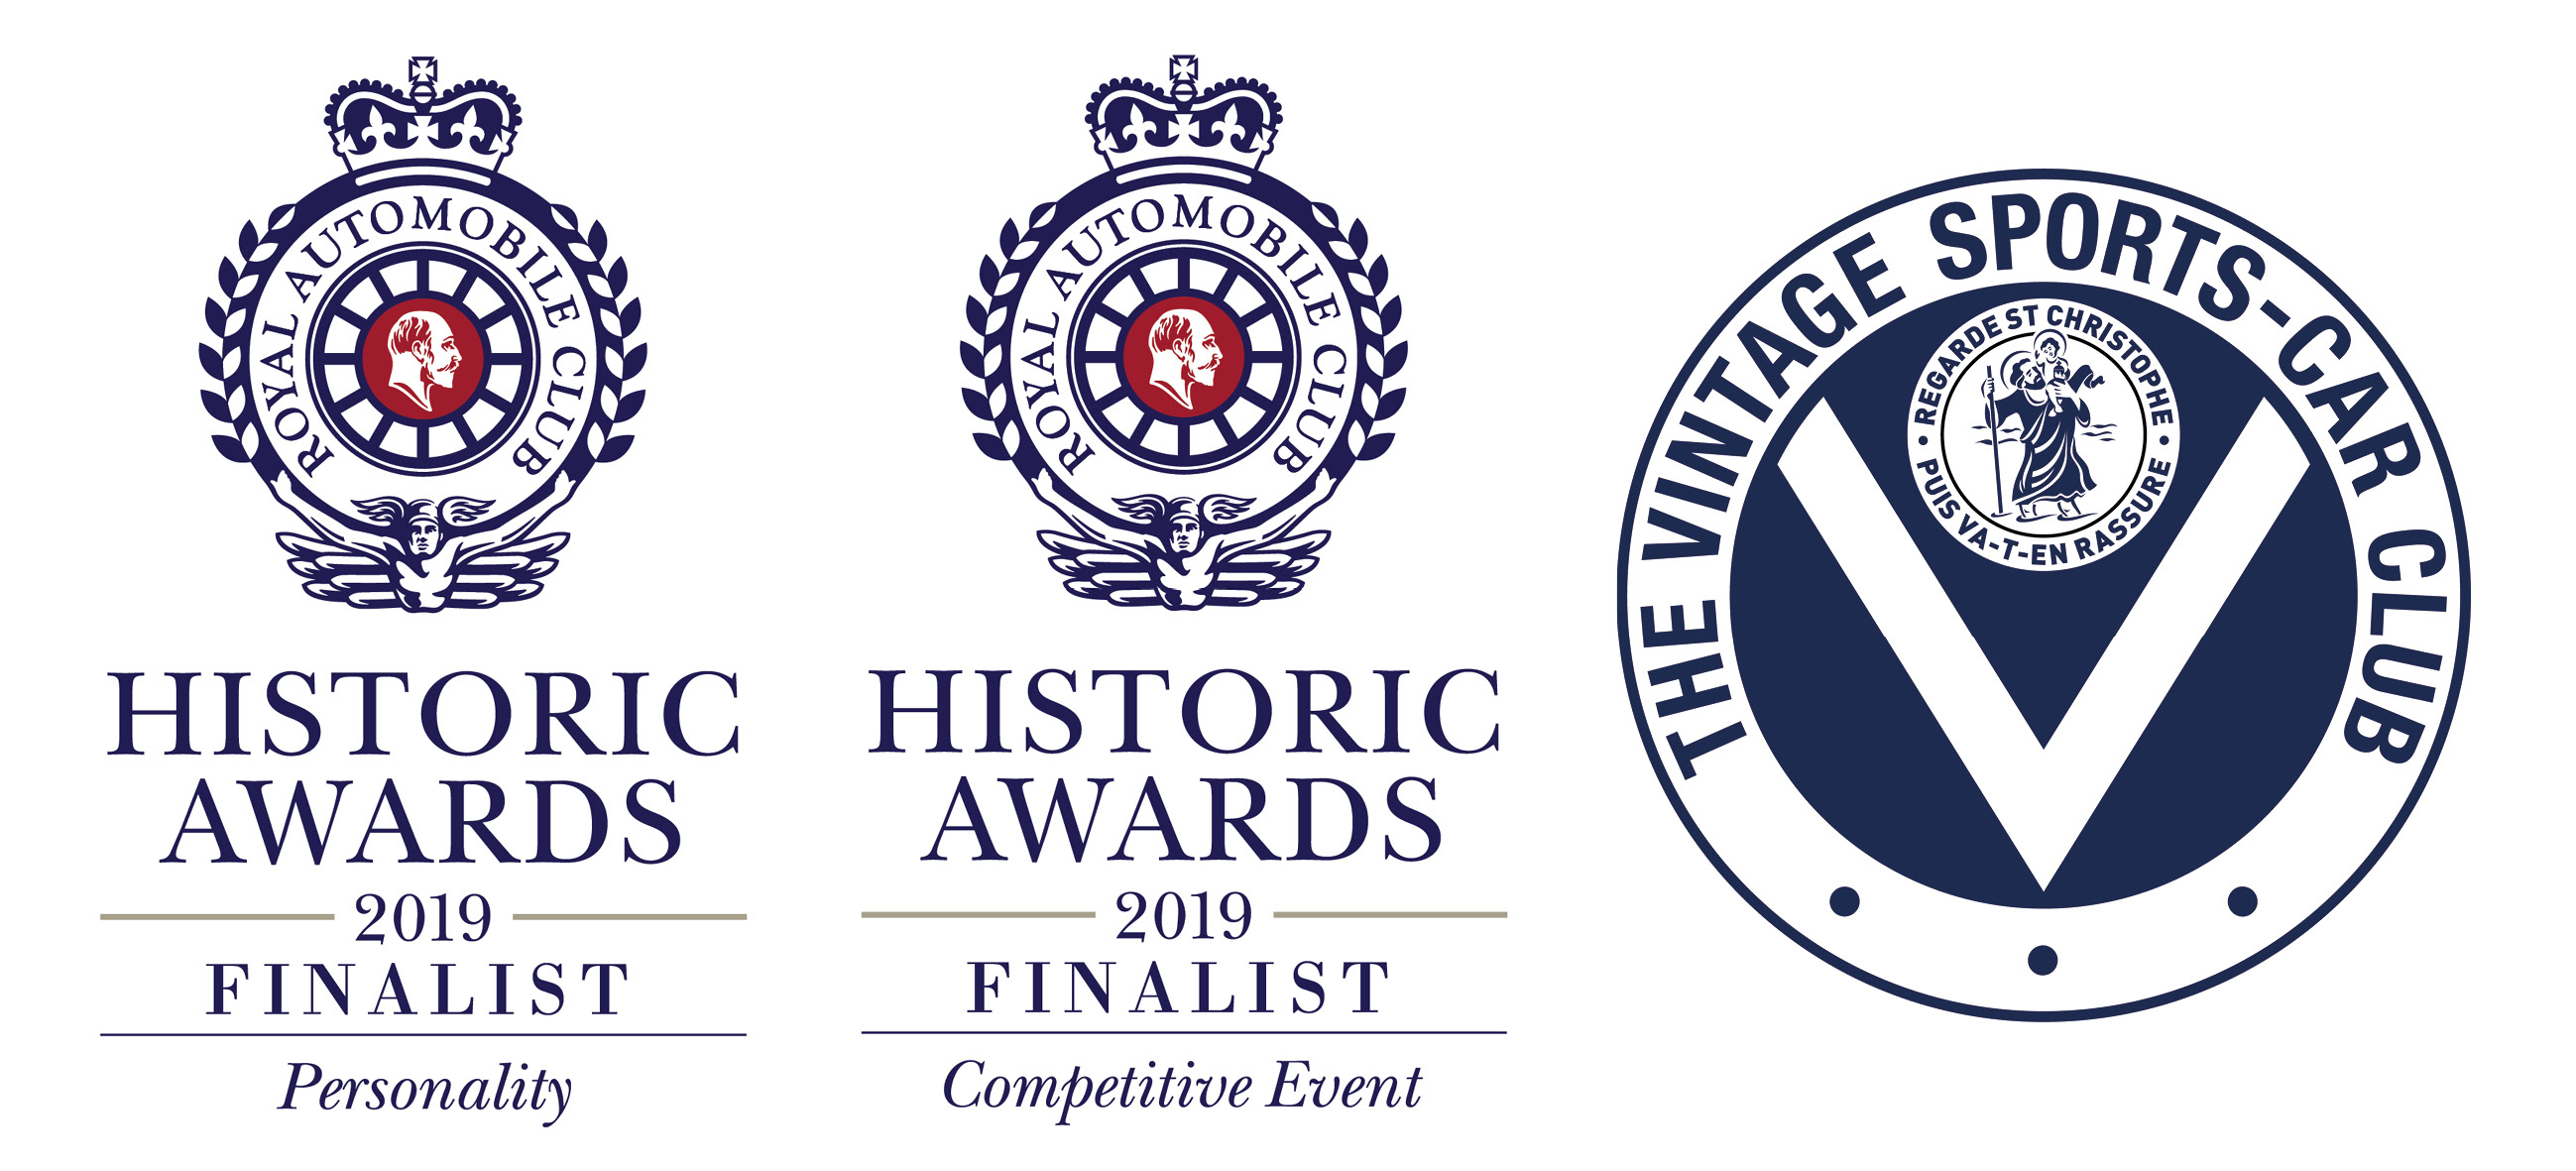 Royal Automobile Club Historic Awards success for The Vintage Sports-Car Club. cover